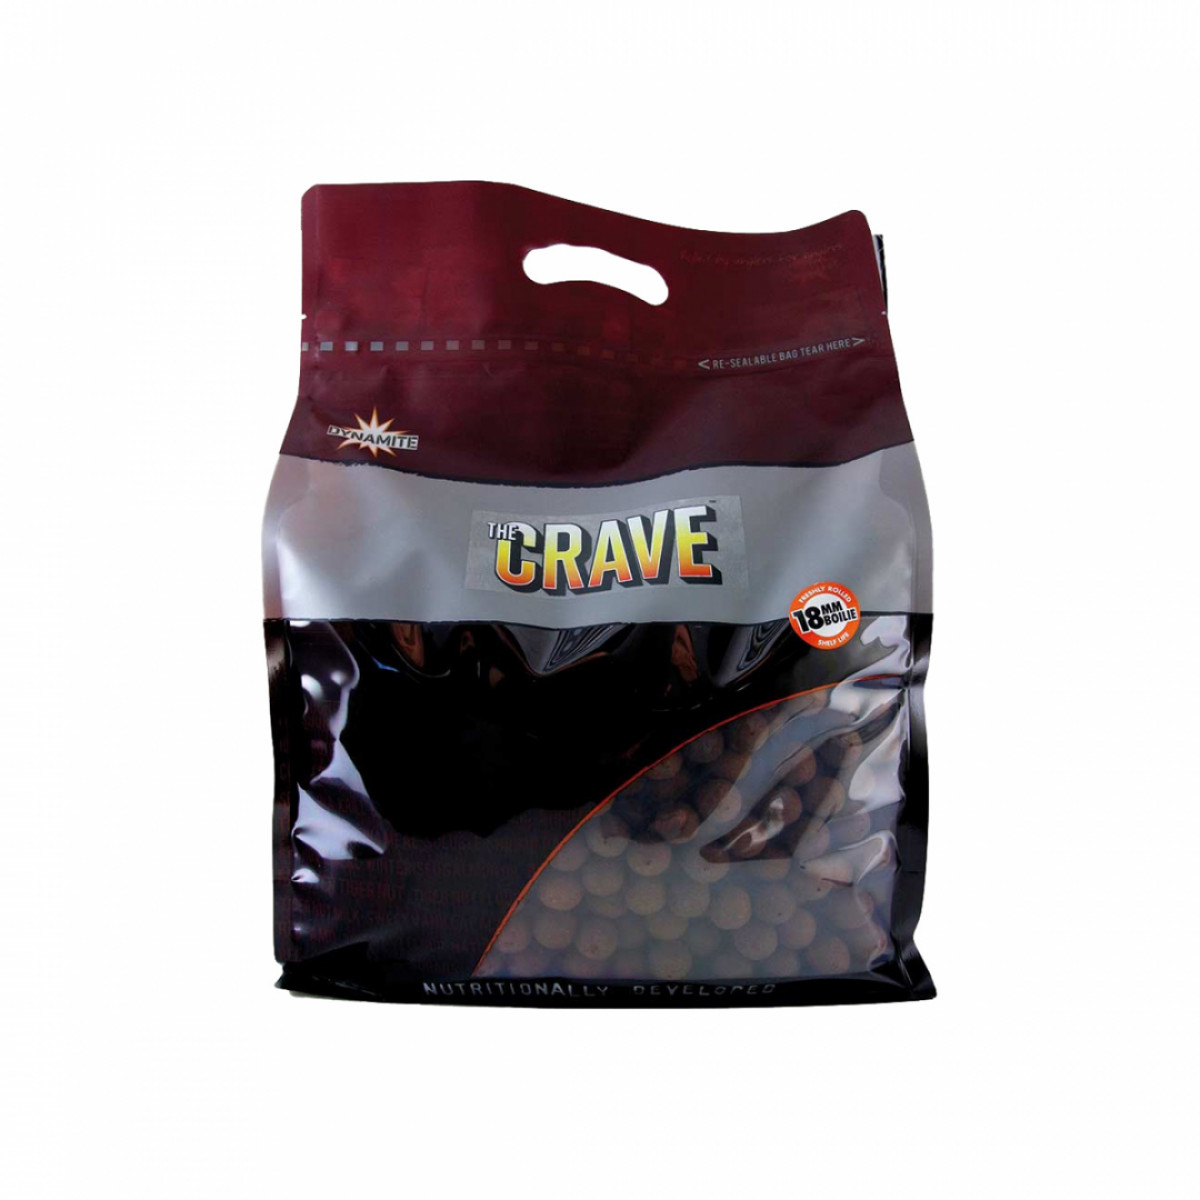 DYNAMITE BAITS TERRY HEARN'S THE CRAVE BOILIES